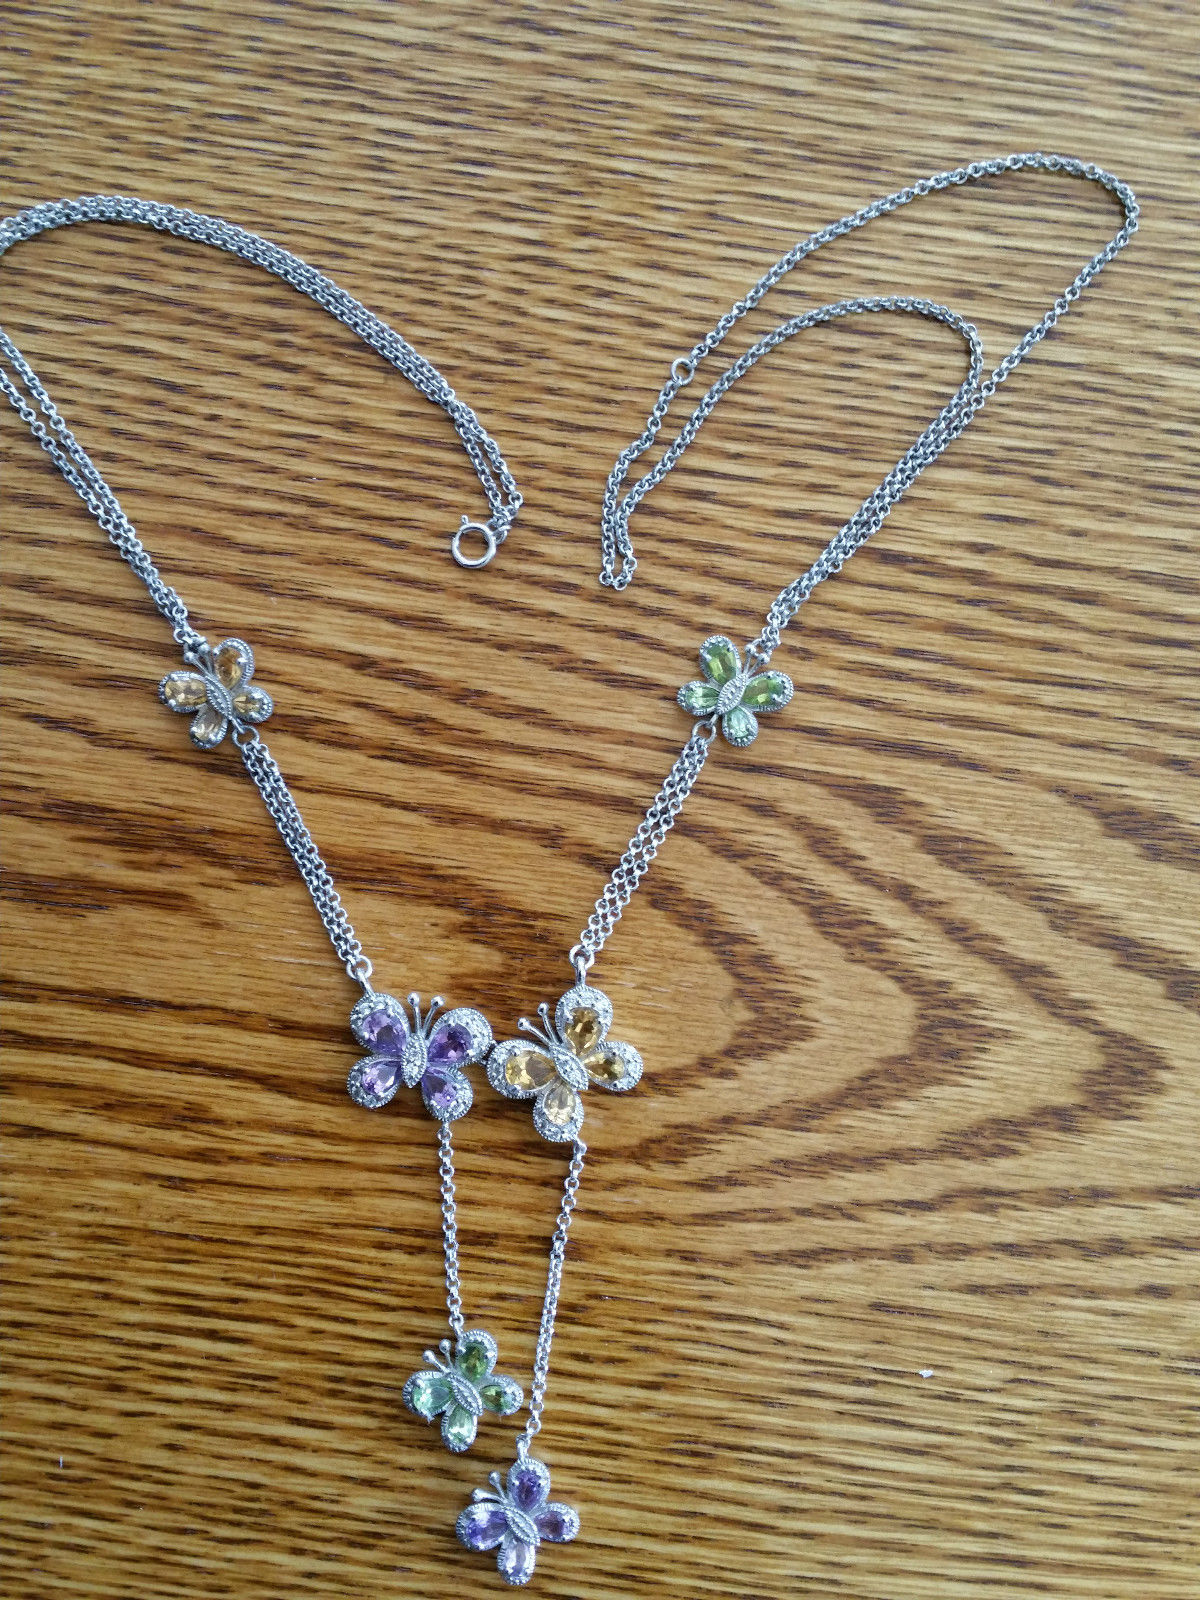 Beautiful Butterfly Necklace Design